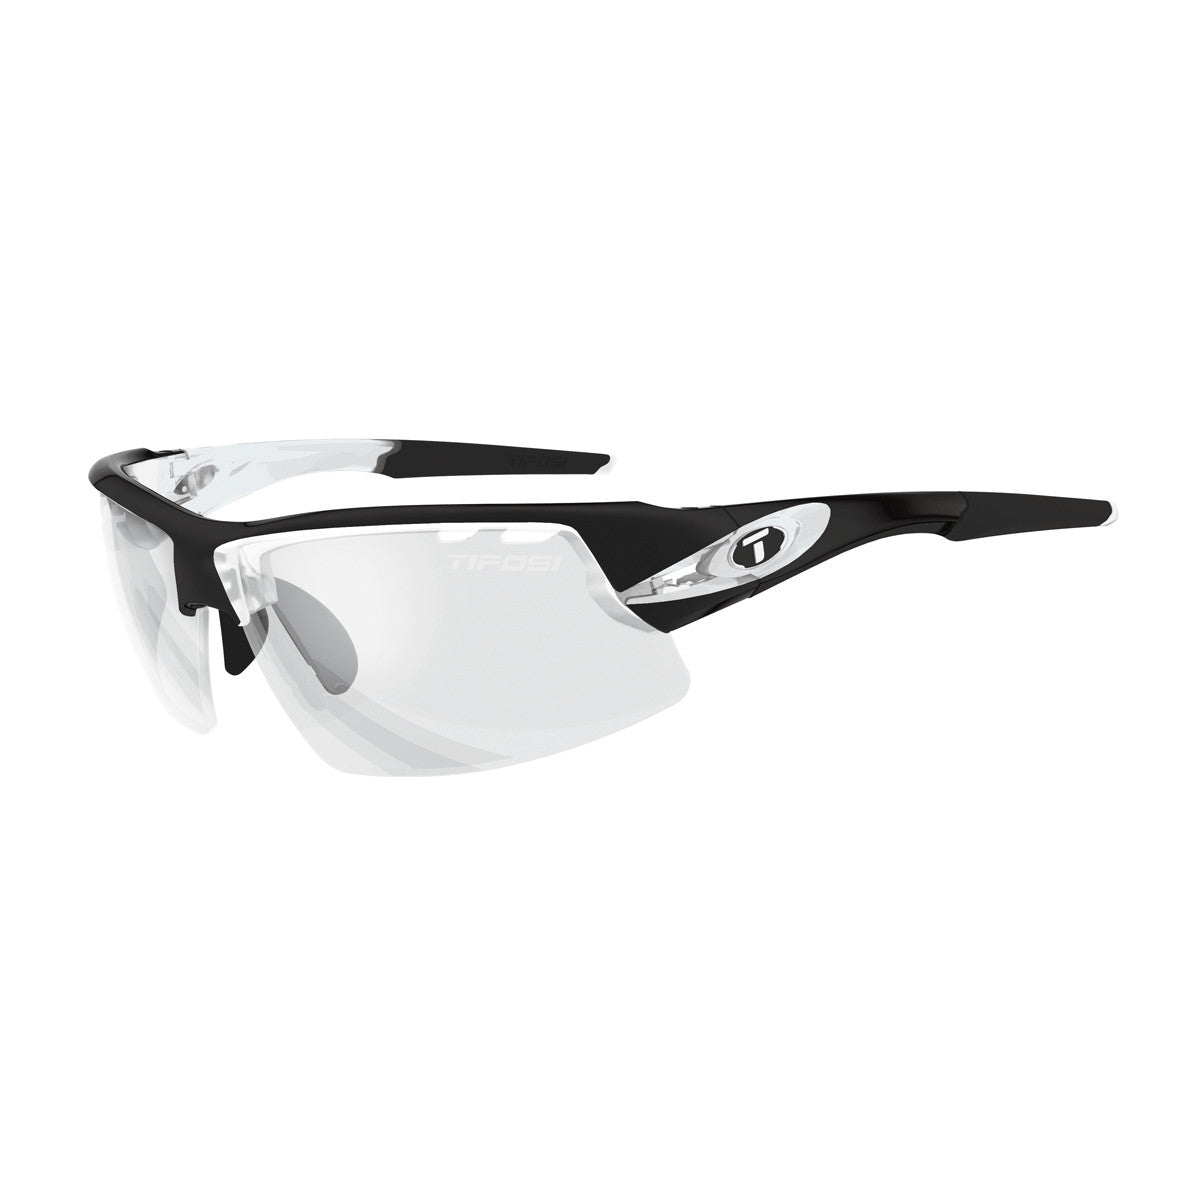 TIFOSI CRIT CRYSTAL BLACK FOTOTEC LIGHT NIGHT LENS SUNGLASSES